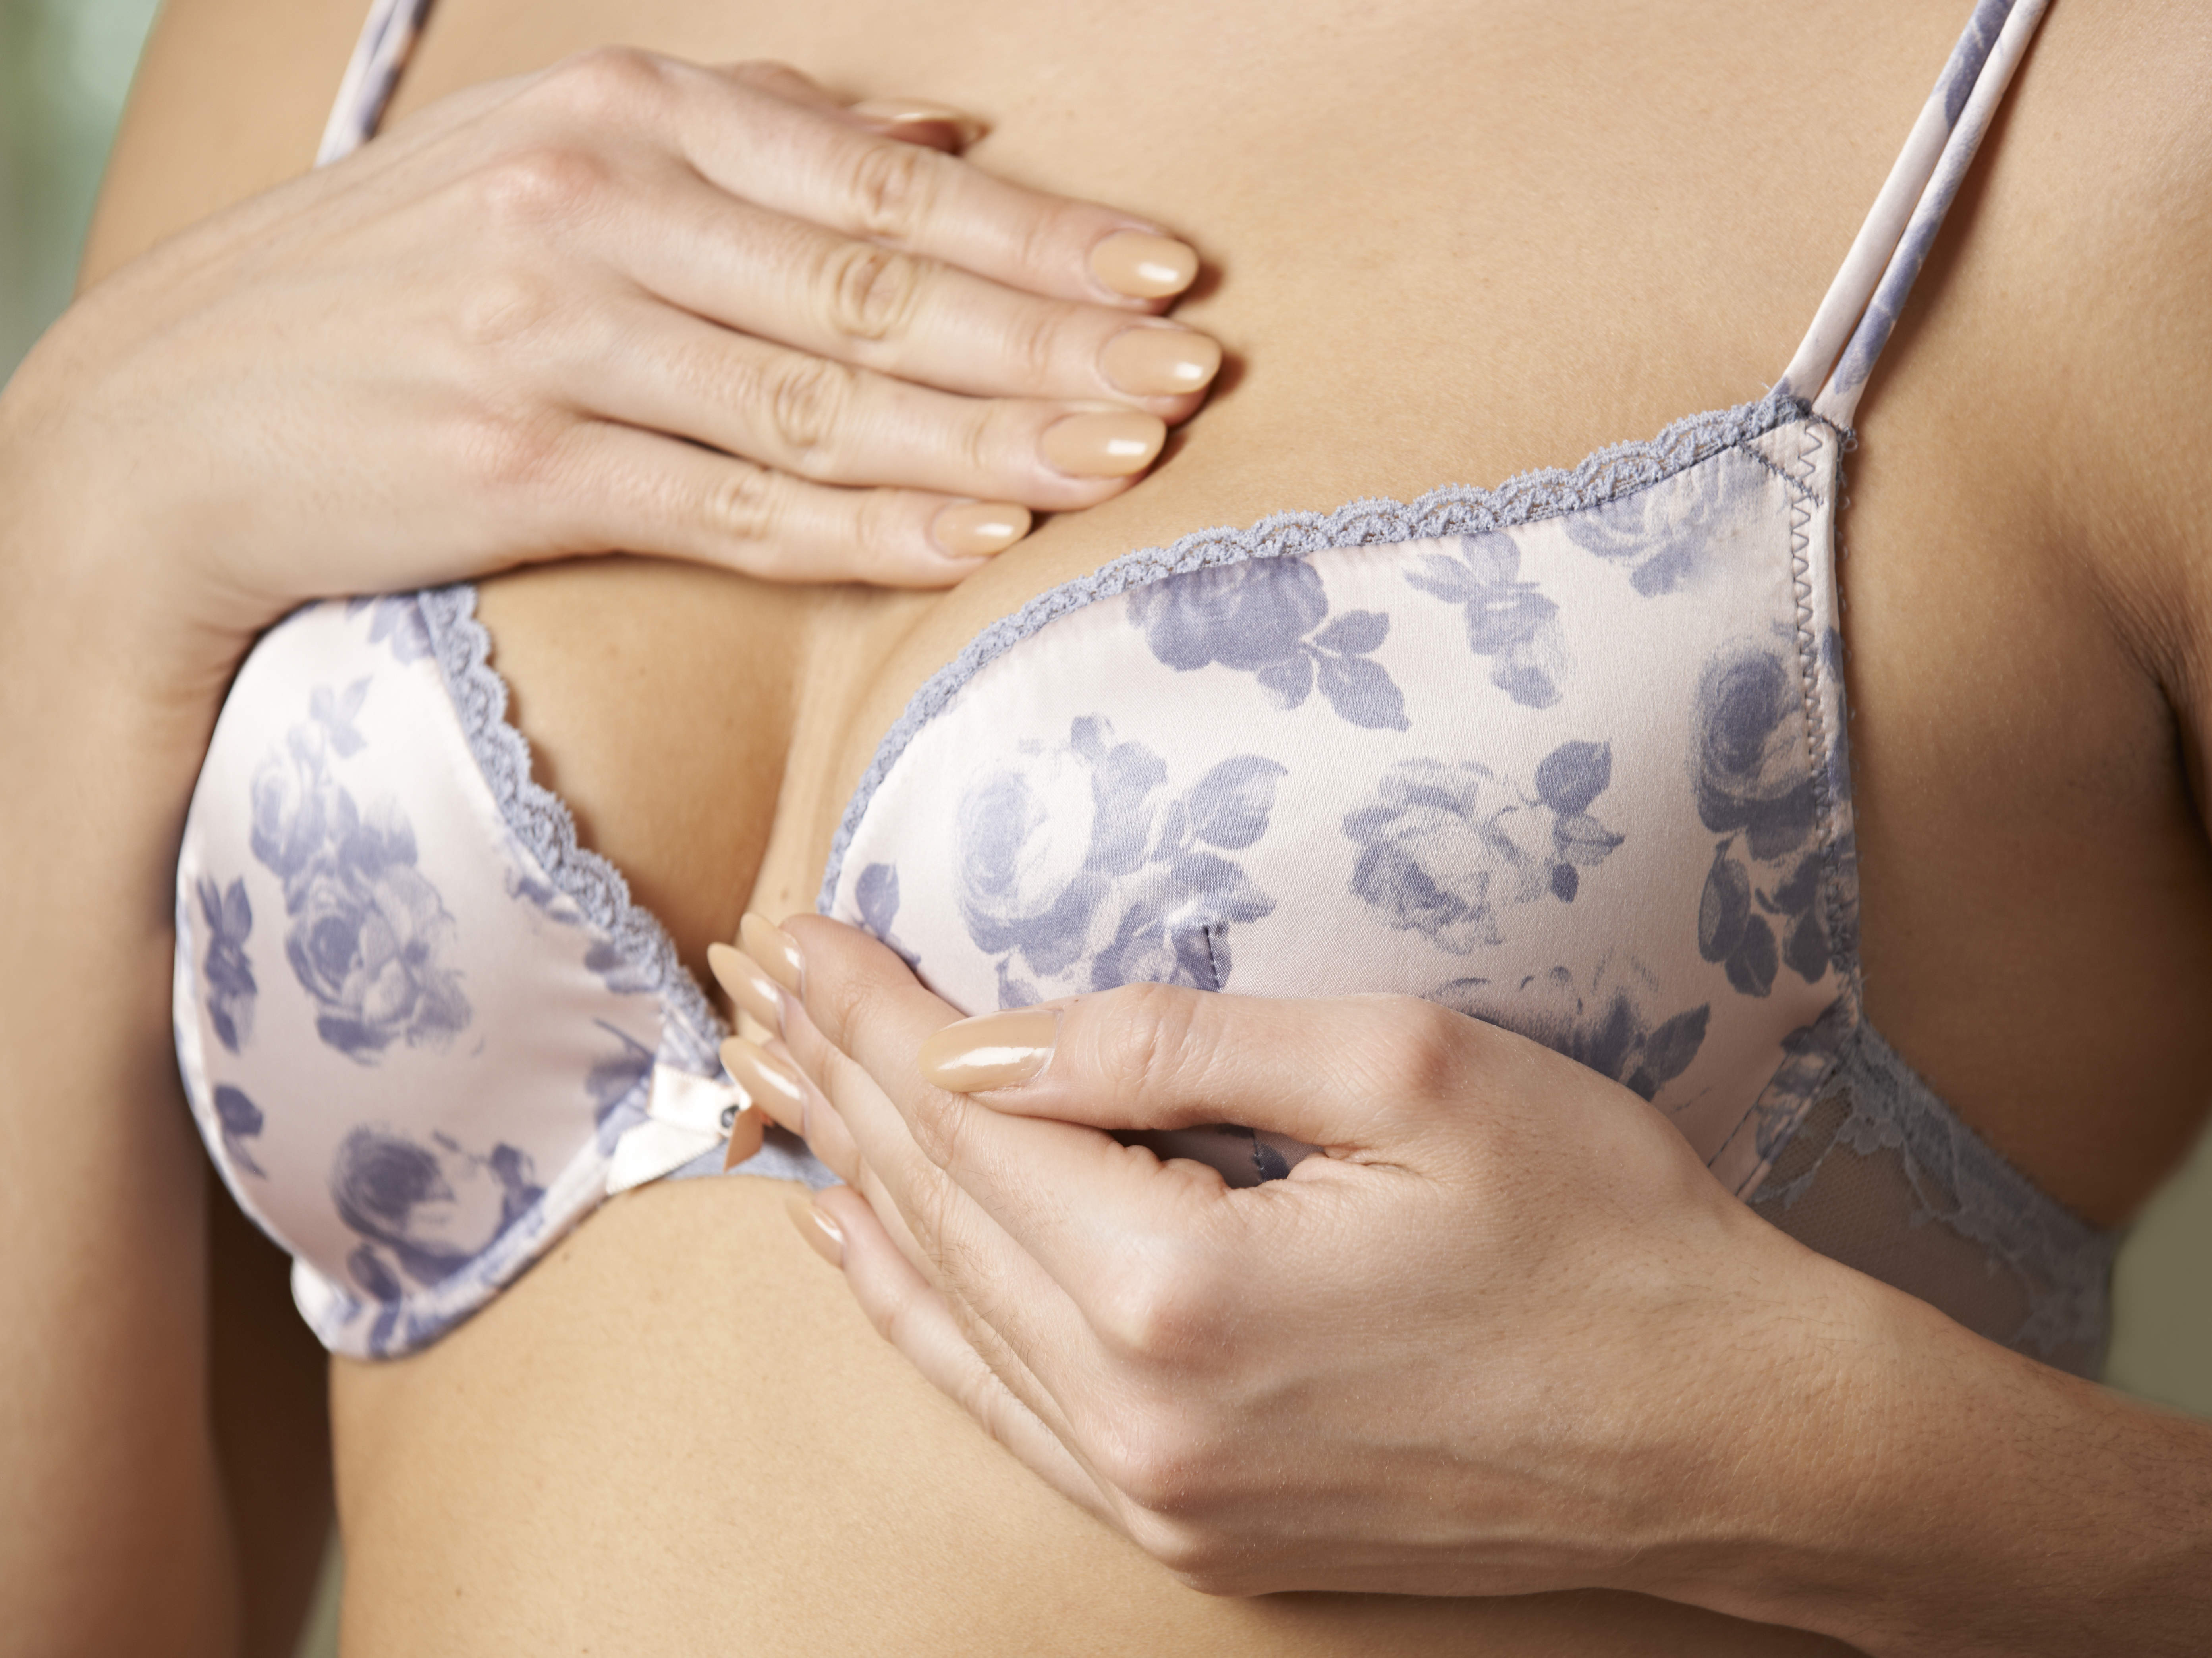 Found a lump in your breast?